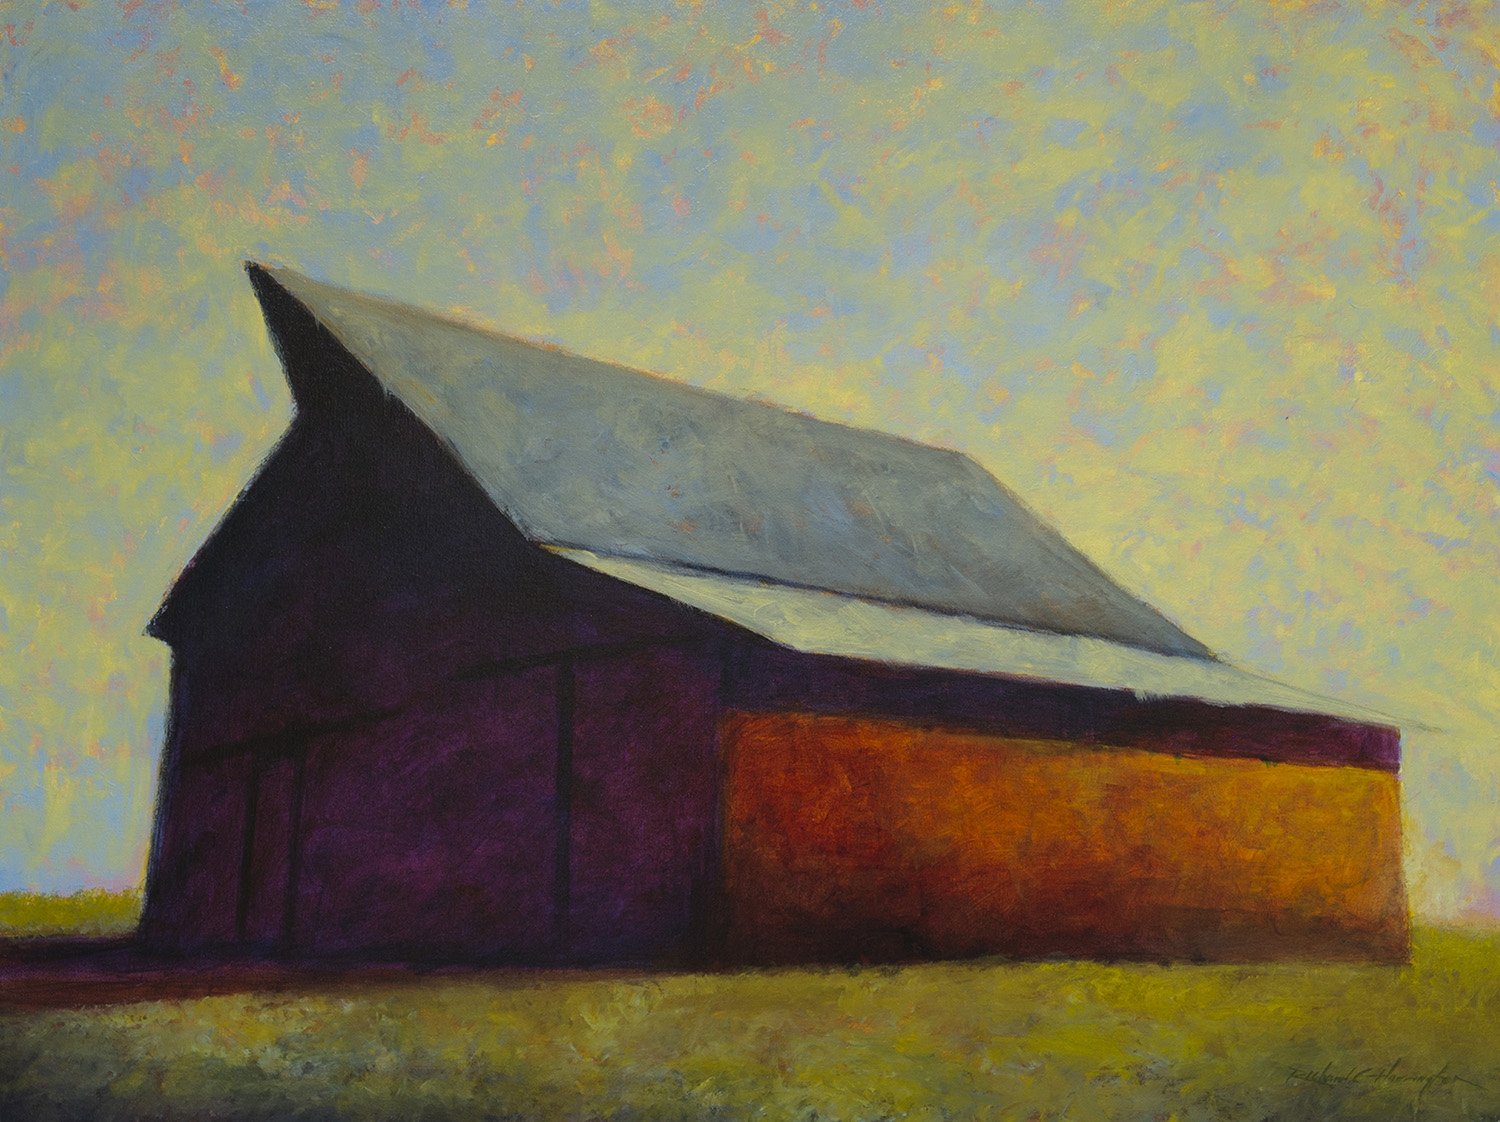 Anthony's Barn, oil on canvas, 30 x 40 inches, available through  Xanadu Gallery .